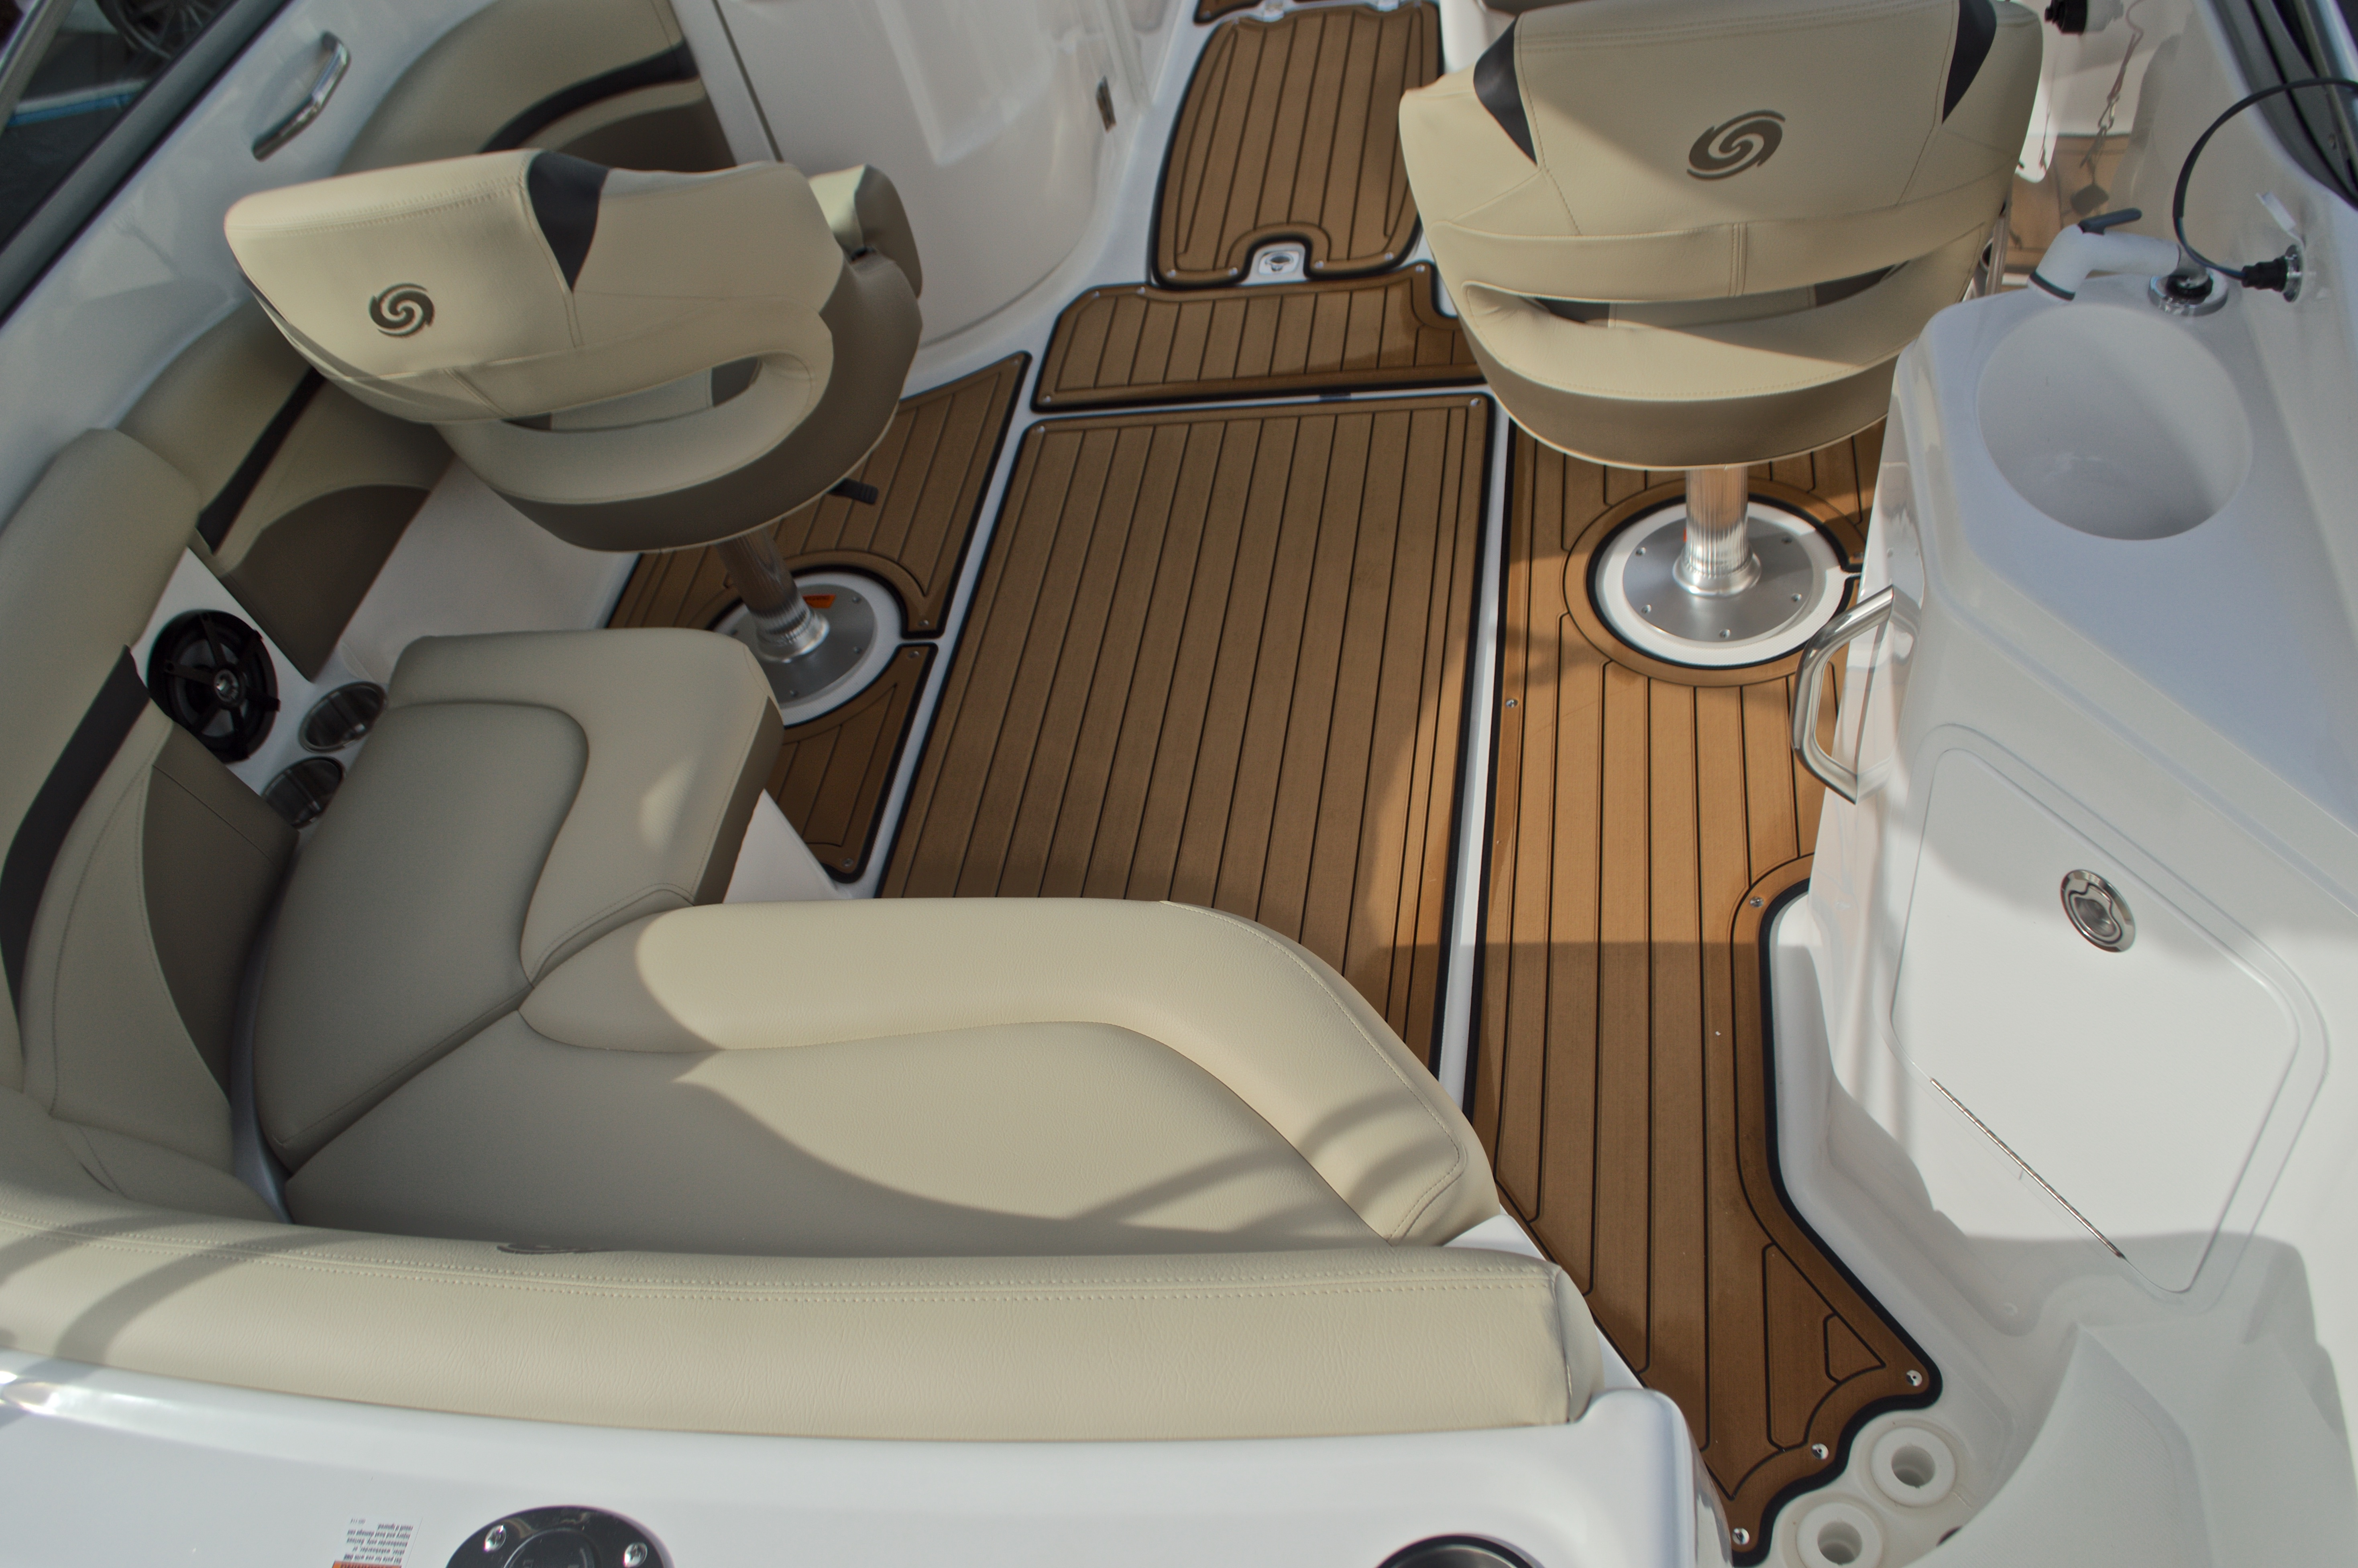 Thumbnail 17 for New 2017 Hurricane SunDeck SD 2200 DC OB boat for sale in West Palm Beach, FL